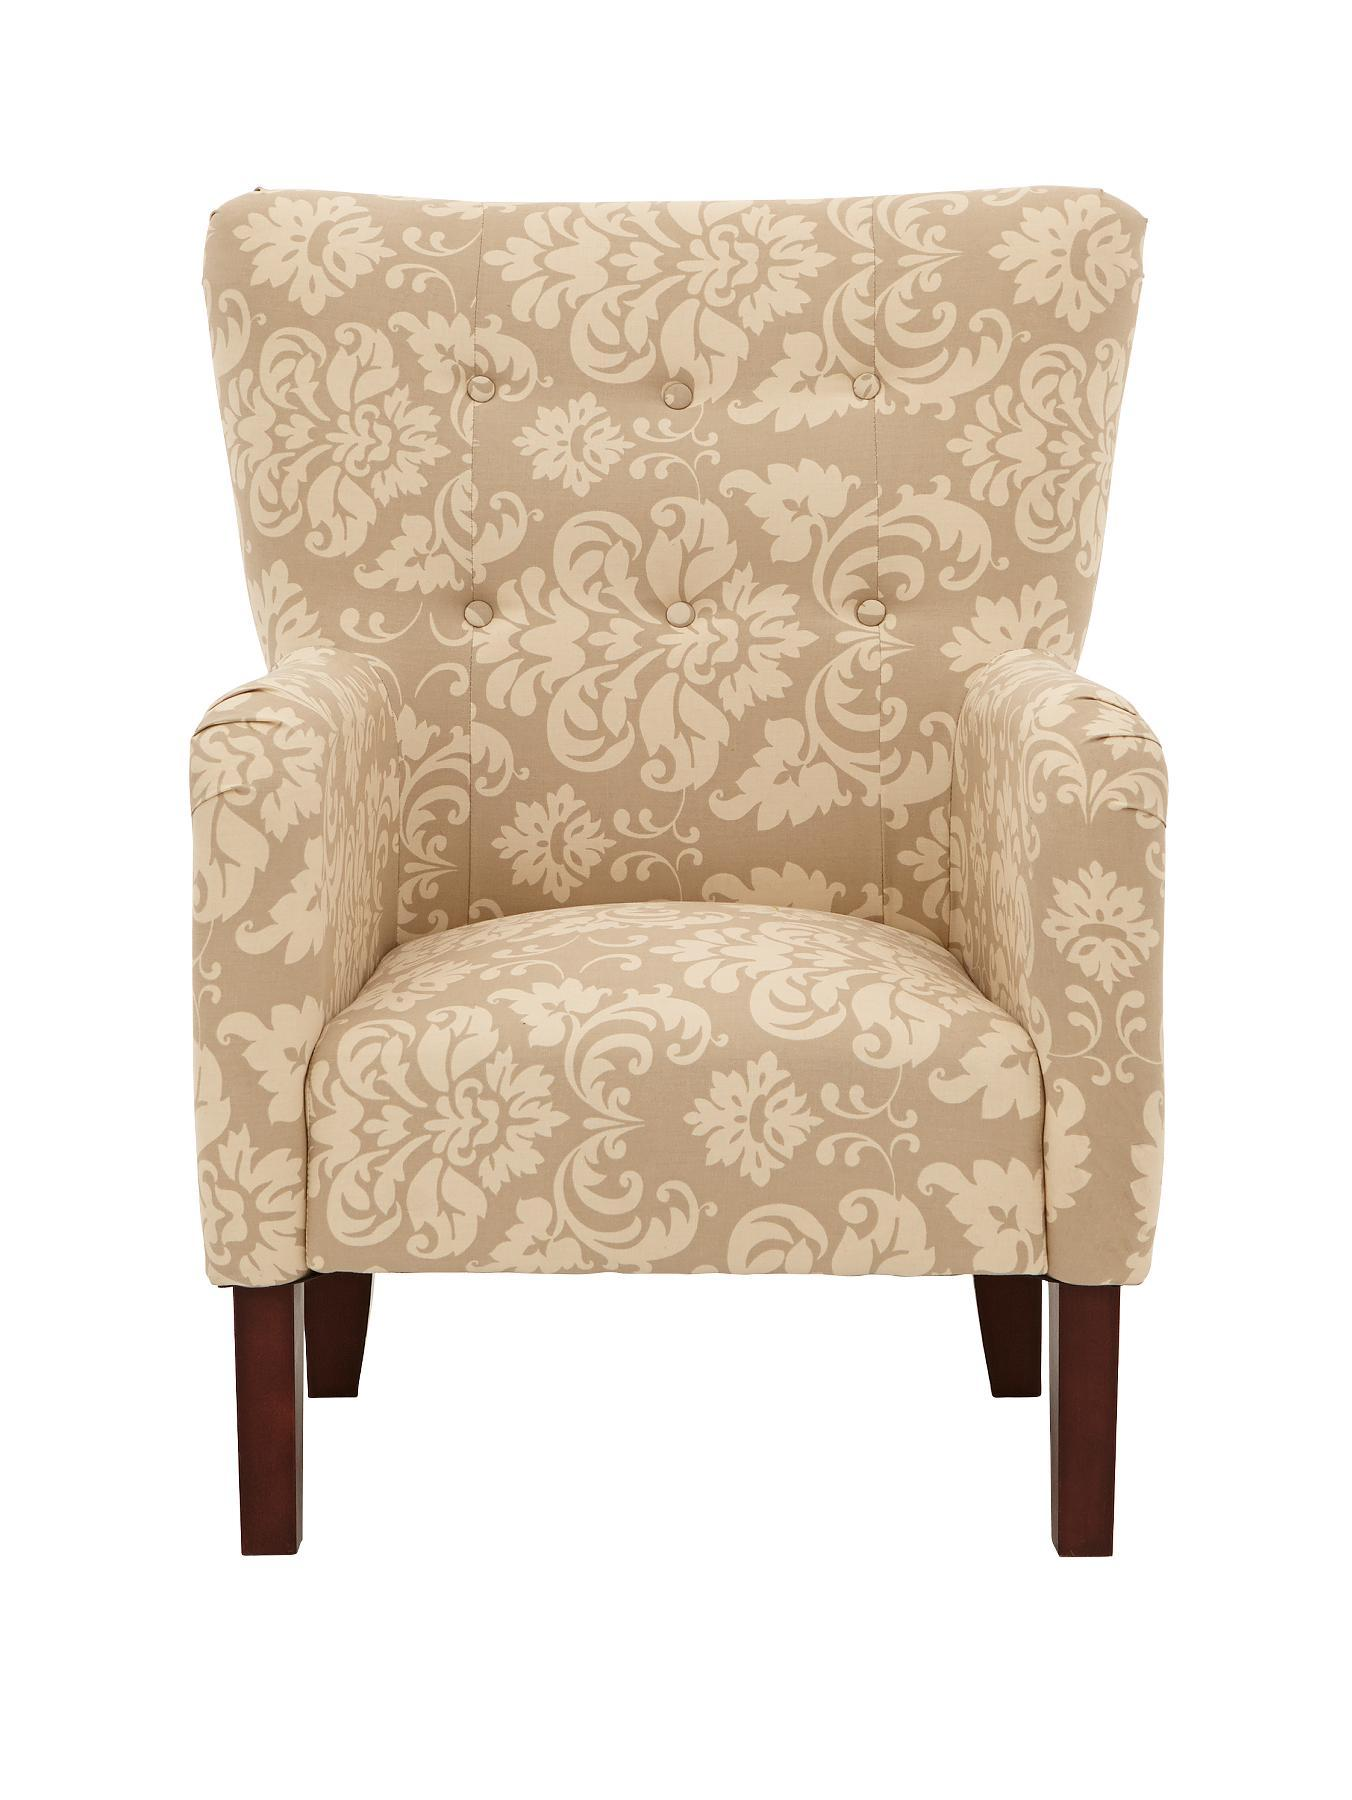 Milly Printed Fabric Accent Chair - Black, Black